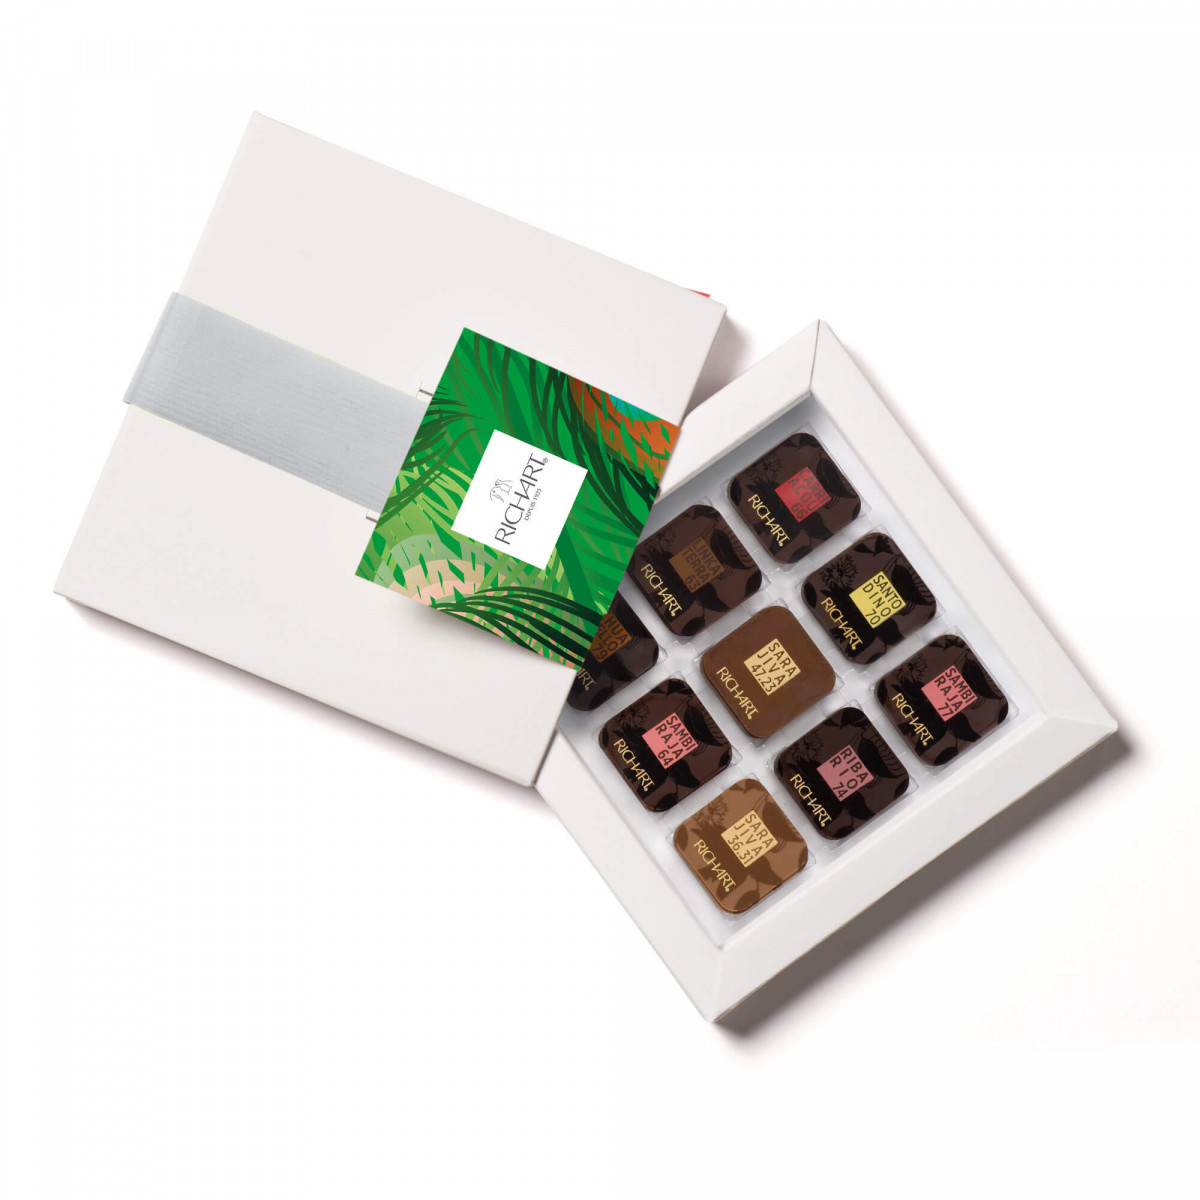 Camino Box of 36 squares of dark and milk chocolate